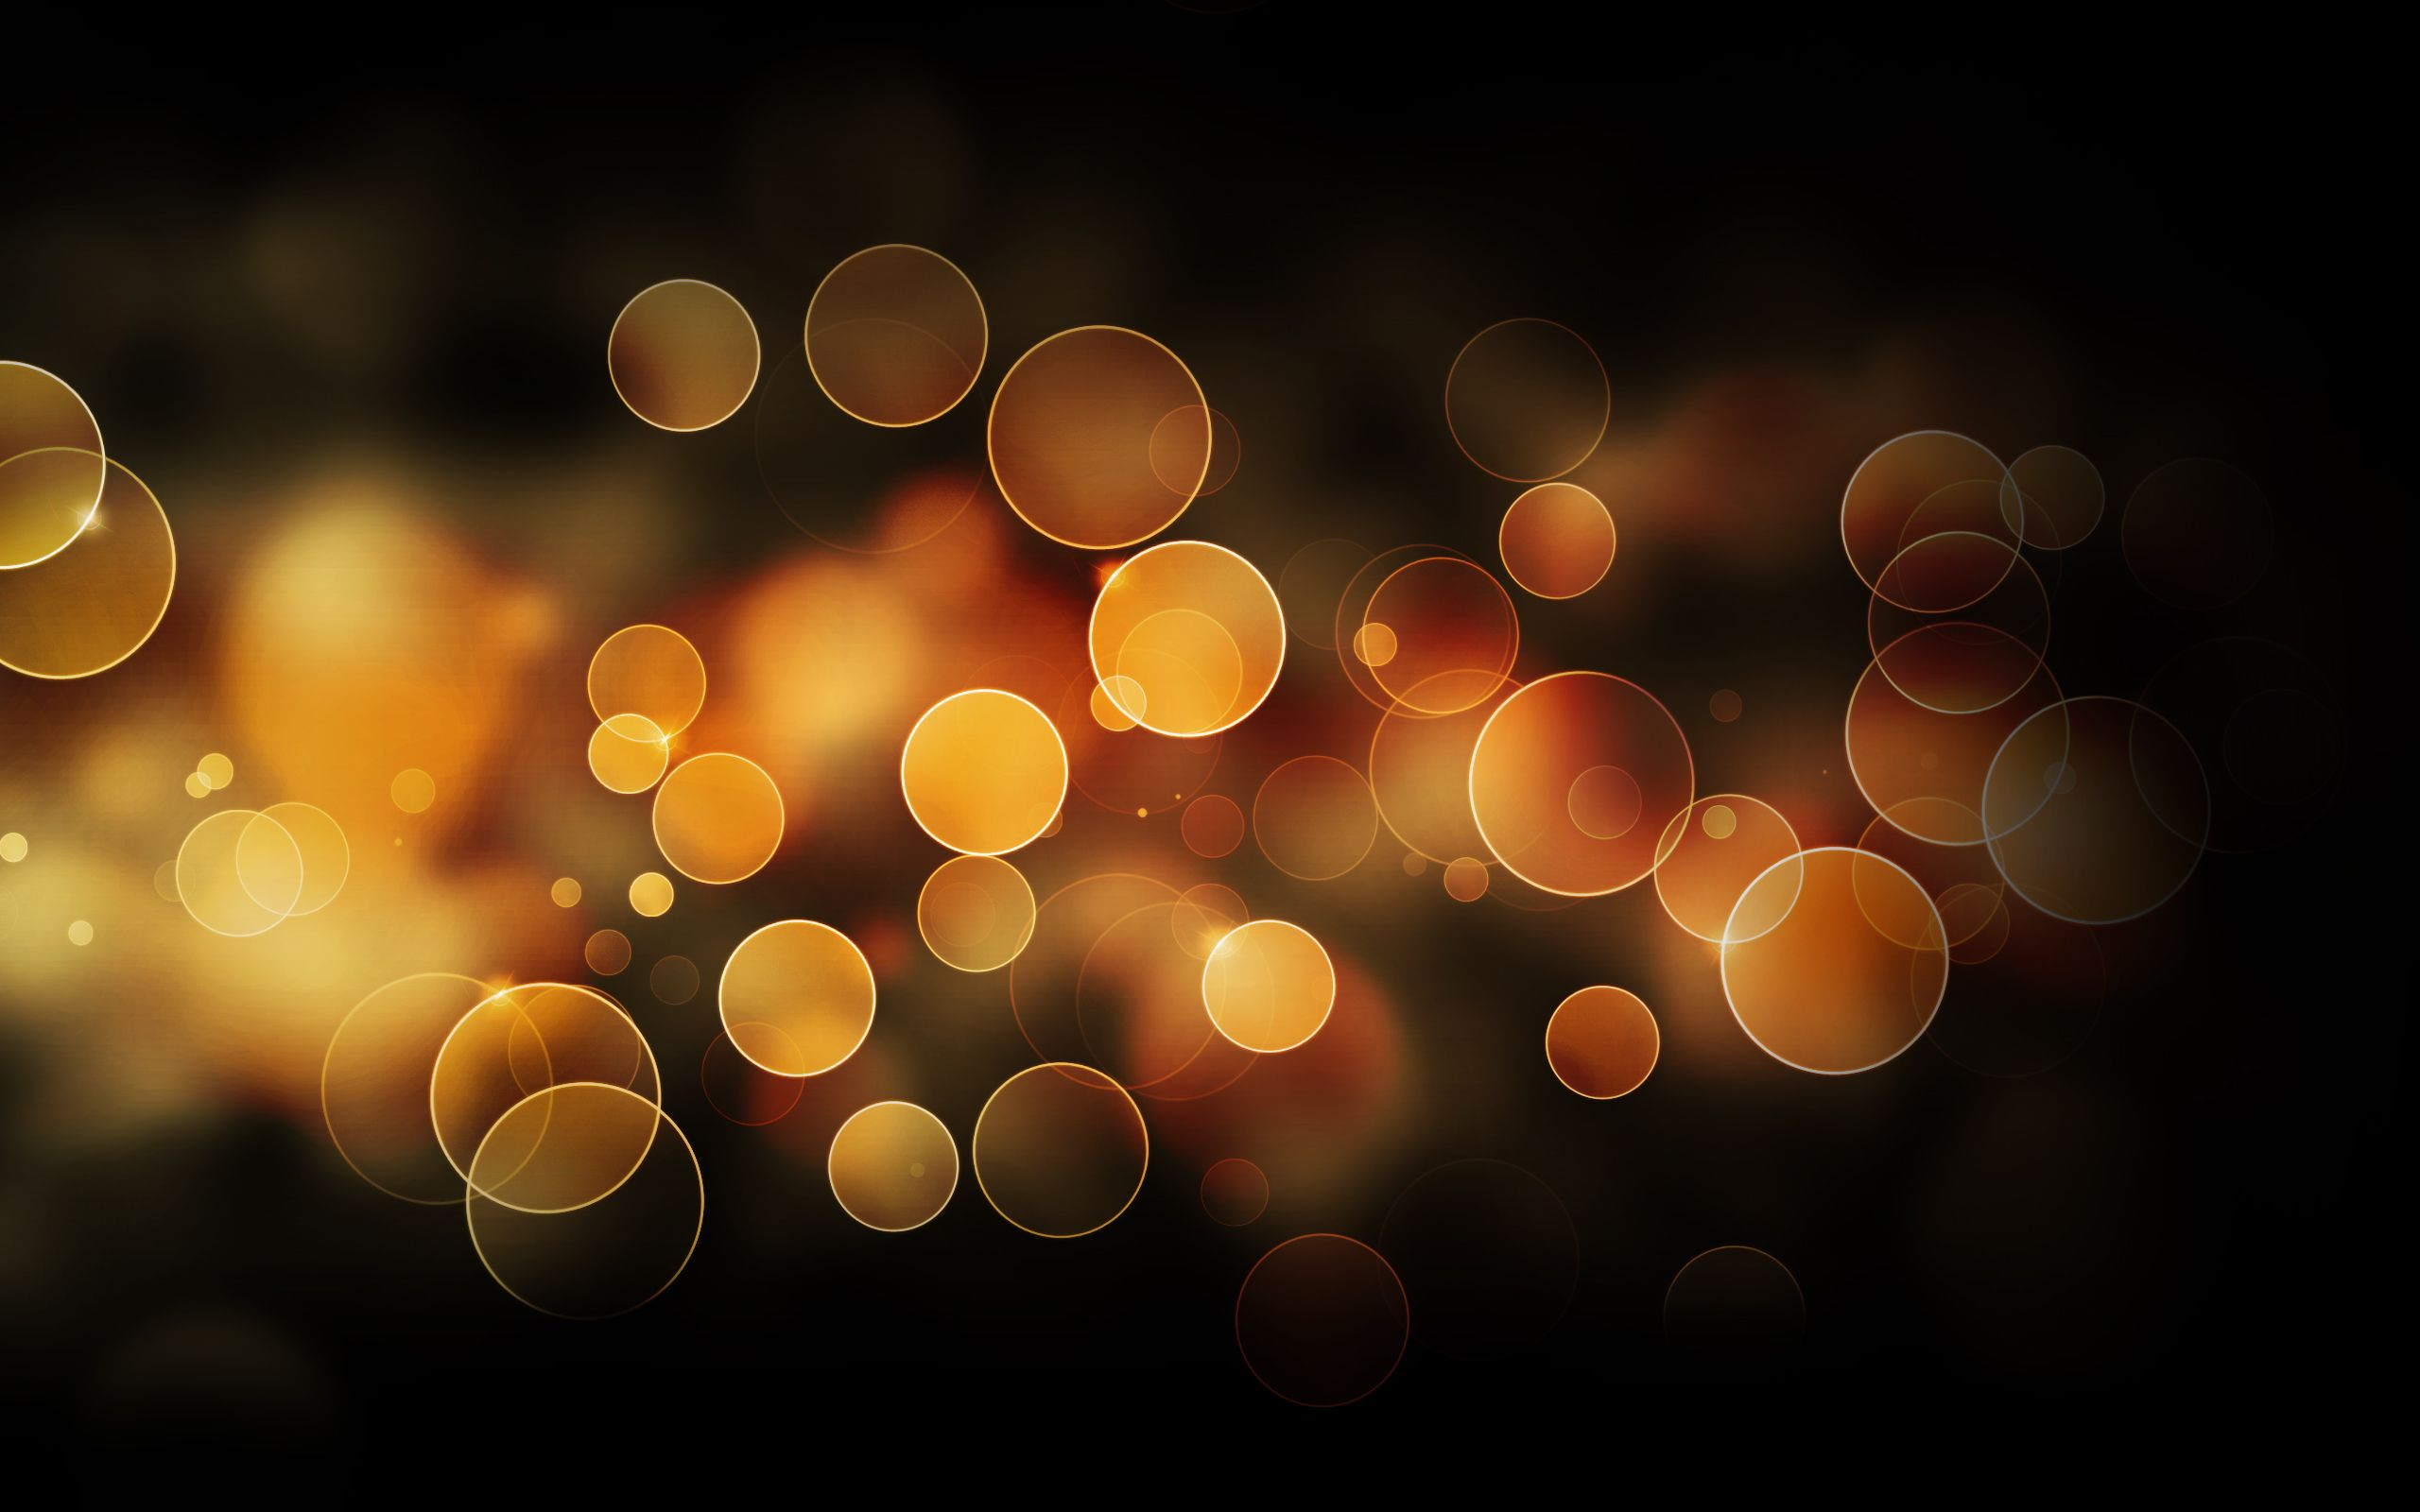 Pin by jewels on fairy lights and fireflies pinterest bokeh 15 bokeh effects photoshop tutorials baditri Choice Image